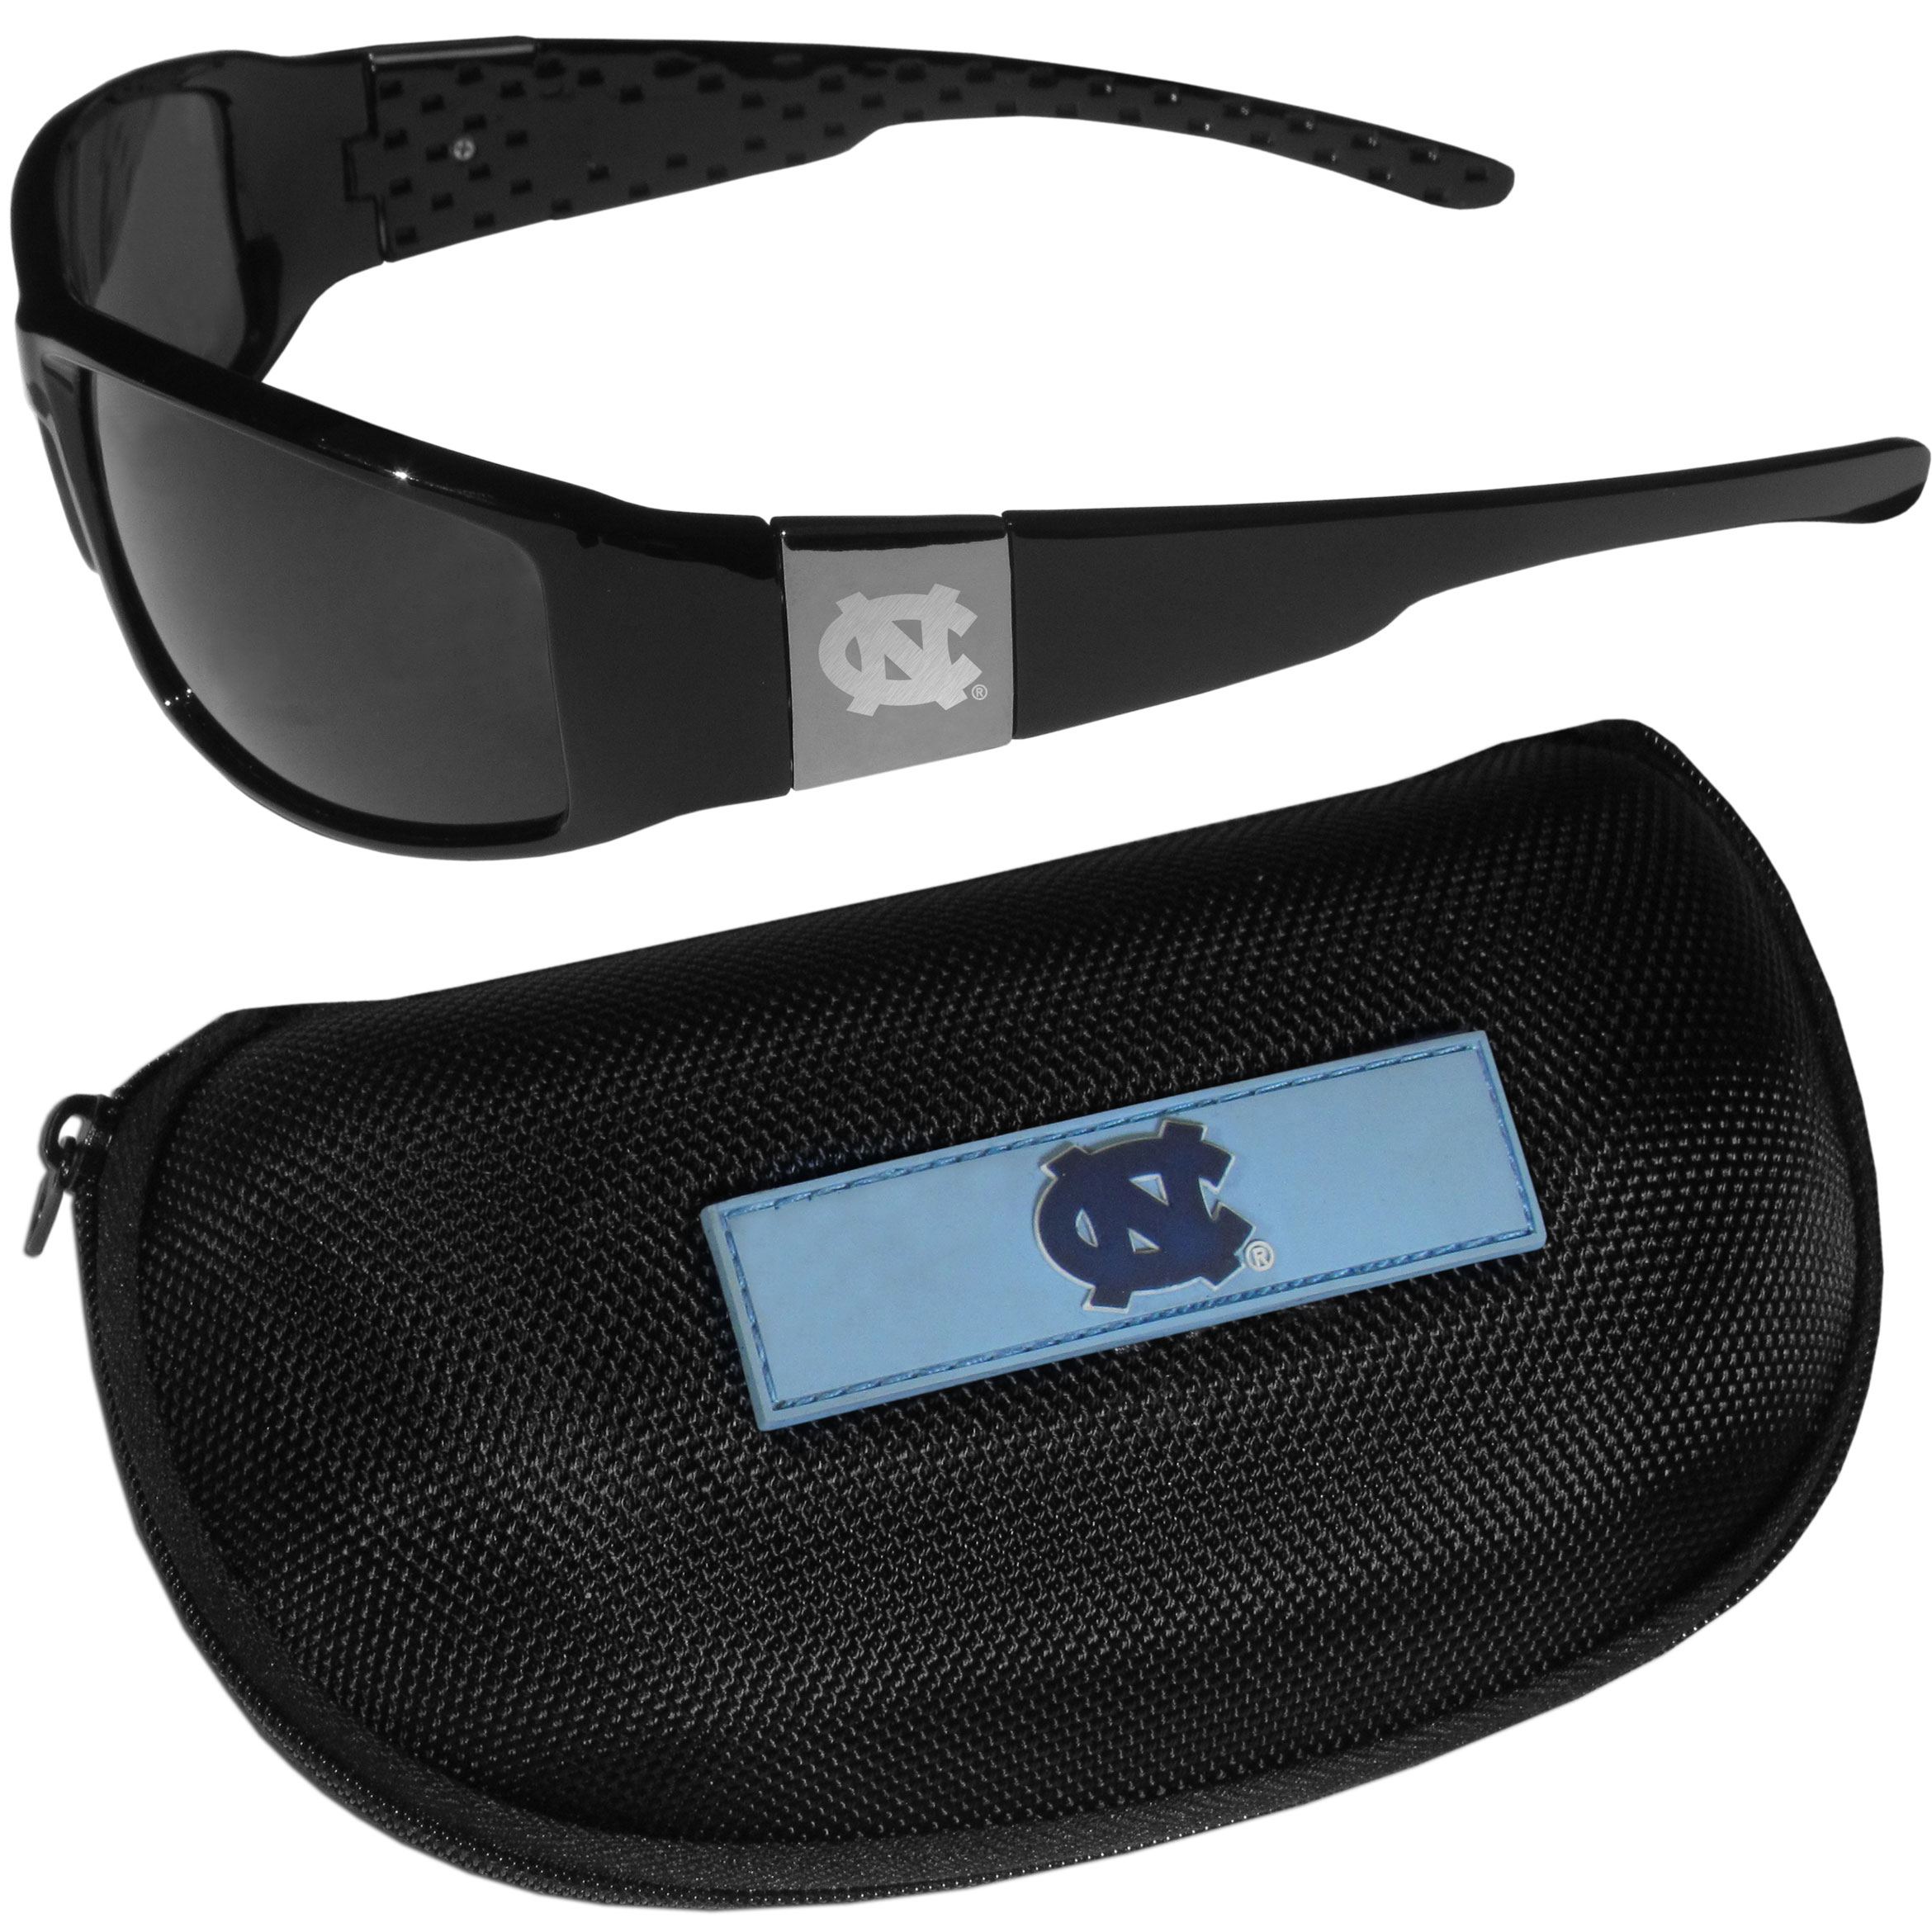 N. Carolina Tar Heels Chrome Wrap Sunglasses and Zippered Carrying Case - These designer inspired frames have a sleek look in all black with high-polish chrome N. Carolina Tar Heels shields on each arm with an etched logo. The shades are perfect any outdoor activity like; golfing, driving, hiking, fishing or cheering on the team at a tailgating event or an at home game day BBQ with a lens rating of 100% UVA/UVB for maximum UV protection. The high-quality frames are as durable as they are fashionable and with their classic look they are perfect fan accessory that can be worn everyday for every occasion. The shades come with a zippered hard shell case to keep your sunglasses safe.